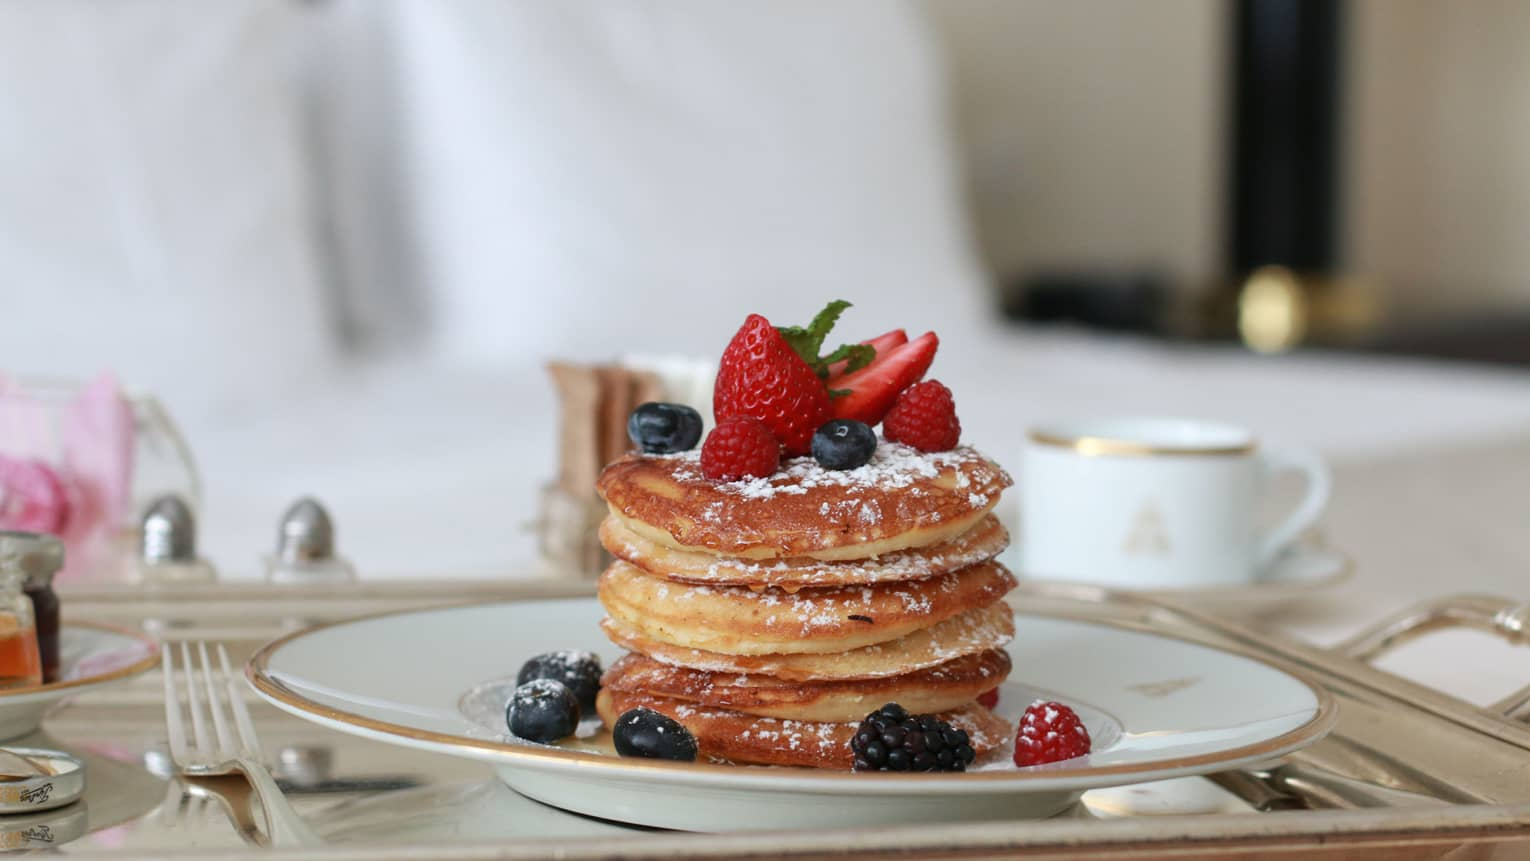 Stack of thick pancakes on plate with dusted icing sugar, fresh berries